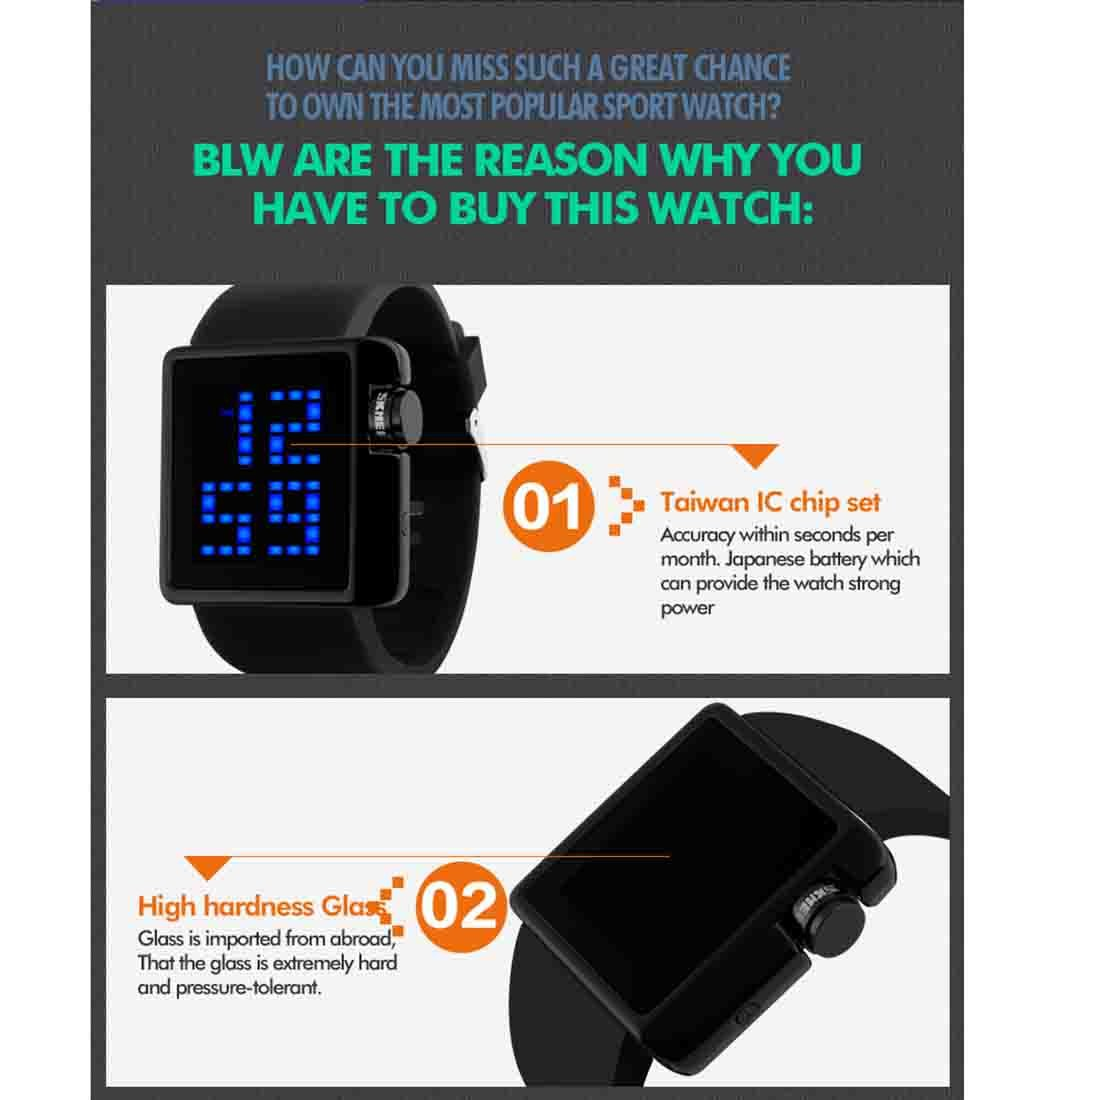 Strict 2018 New Square Watch Silicone Led Watches 24 Hours Date Bracelet Digital Sports Wristwatch Gift For Children Student Kids #w Buy Now Children's Watches